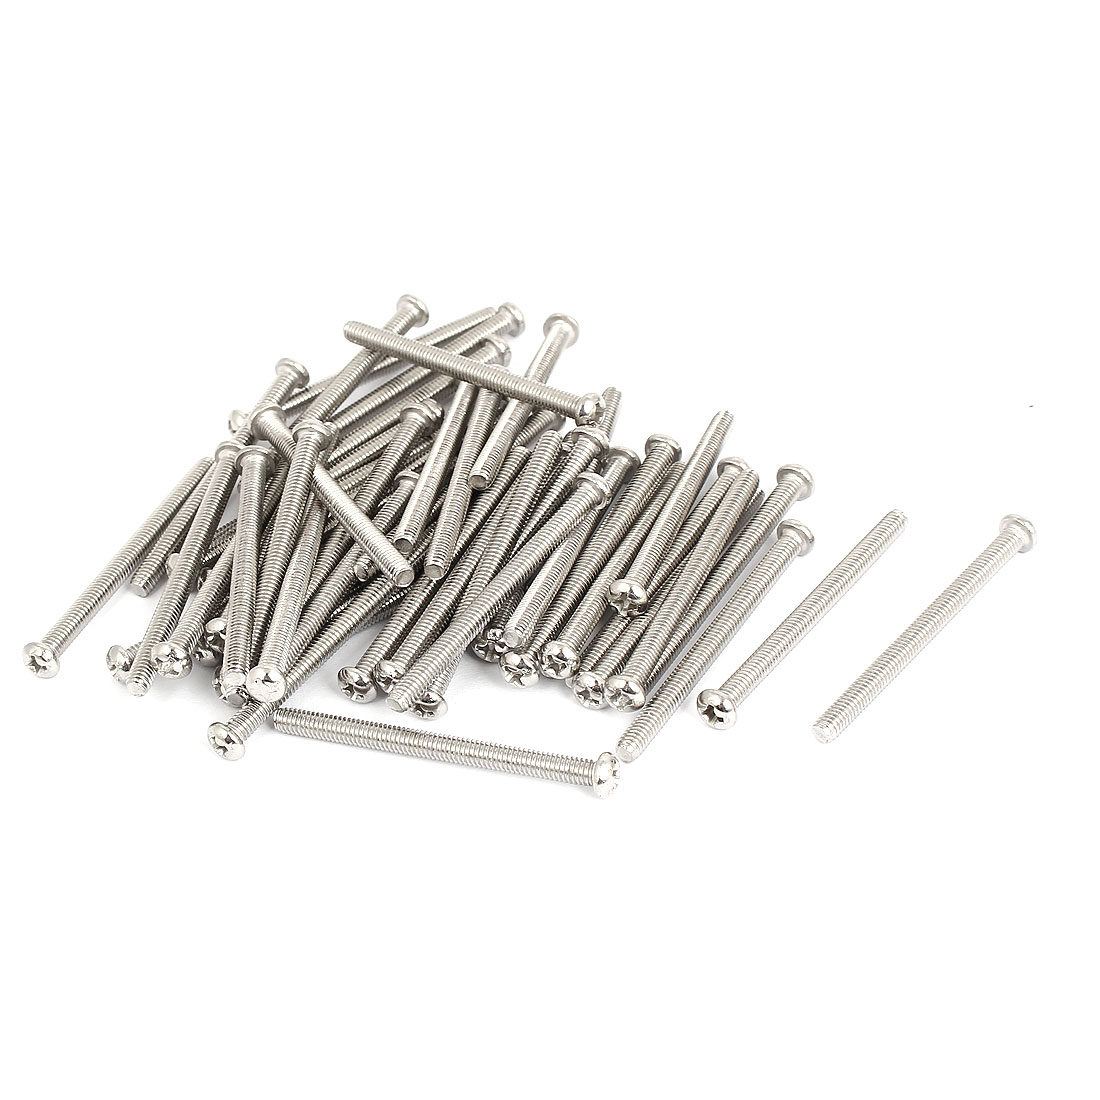 M4x50mm Stainless Steel Phillips Round Pan Head Machine Screws 50pcs